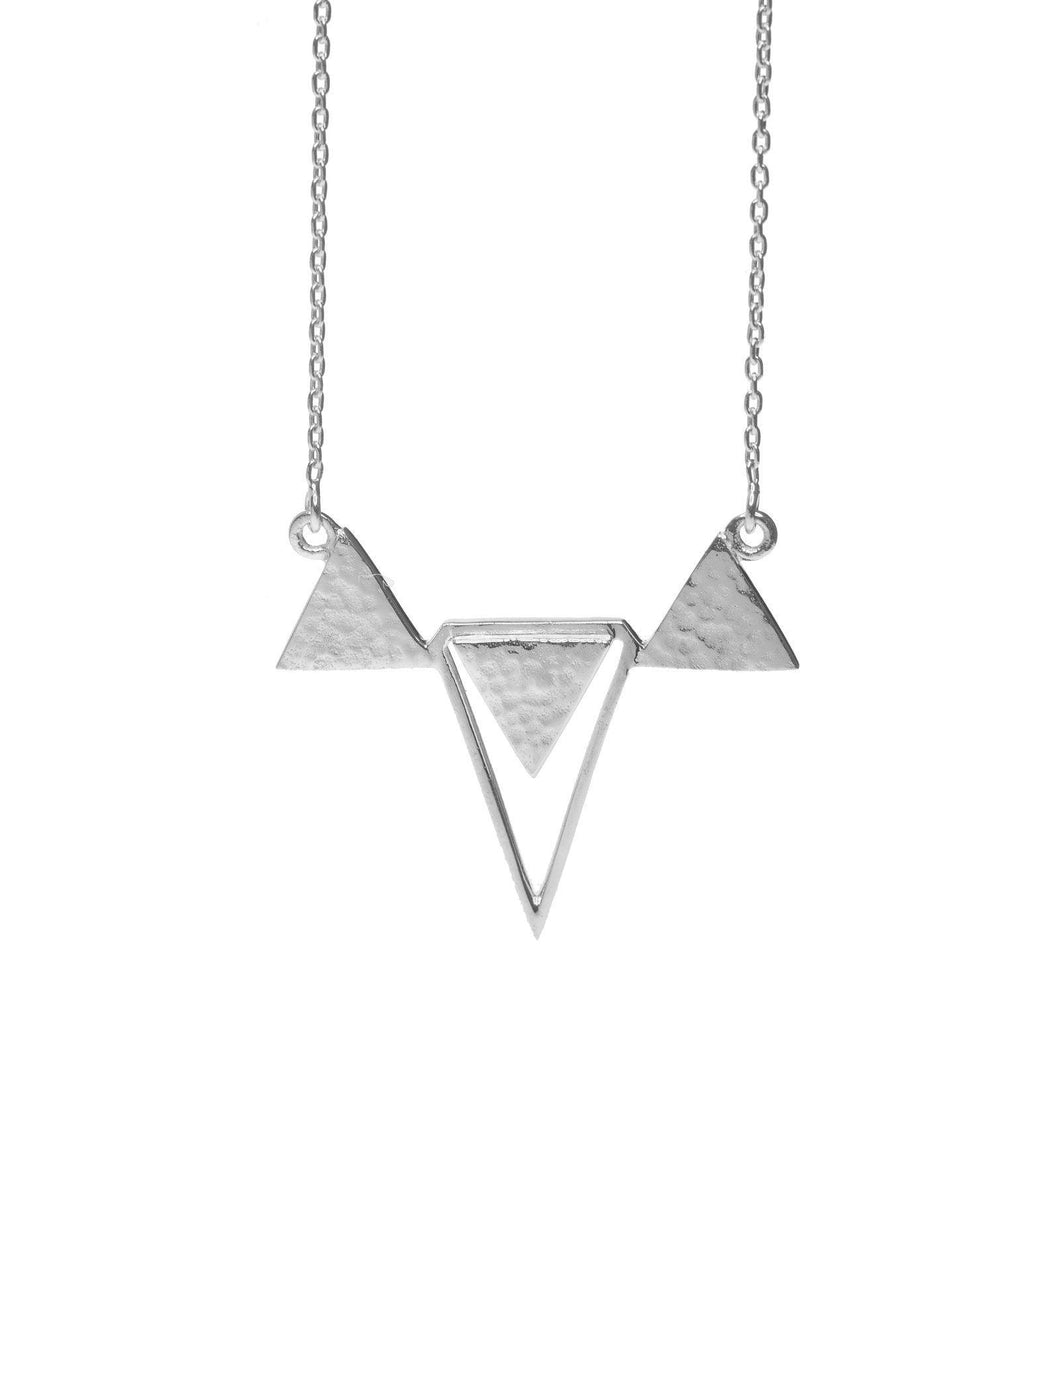 Whisper Silver Necklace by Pastiche available at My Harley and Rose